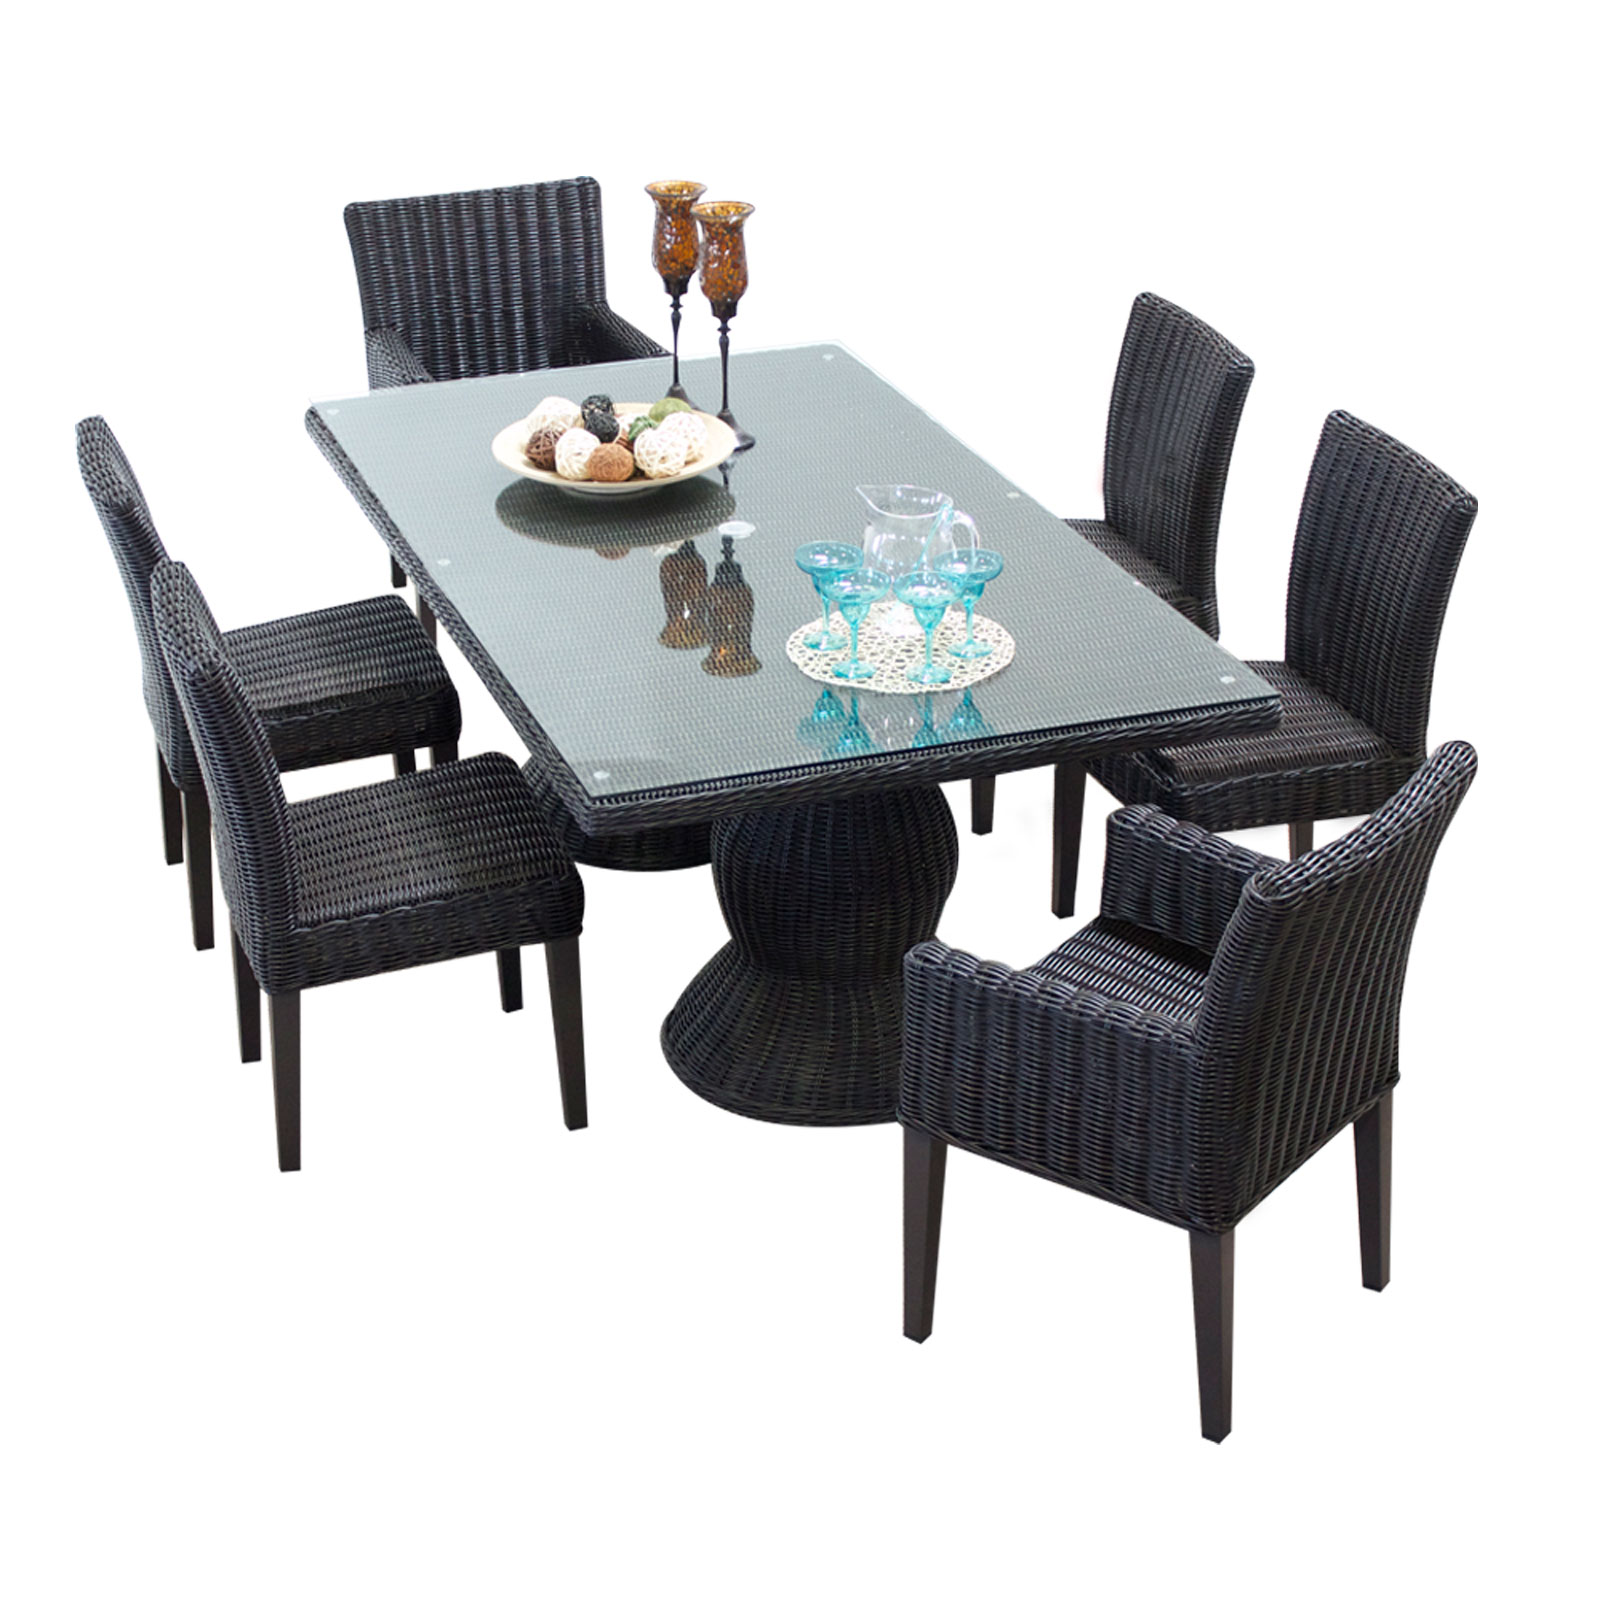 Rustico Rectangular Outdoor Patio Dining Table With 6 Chairs